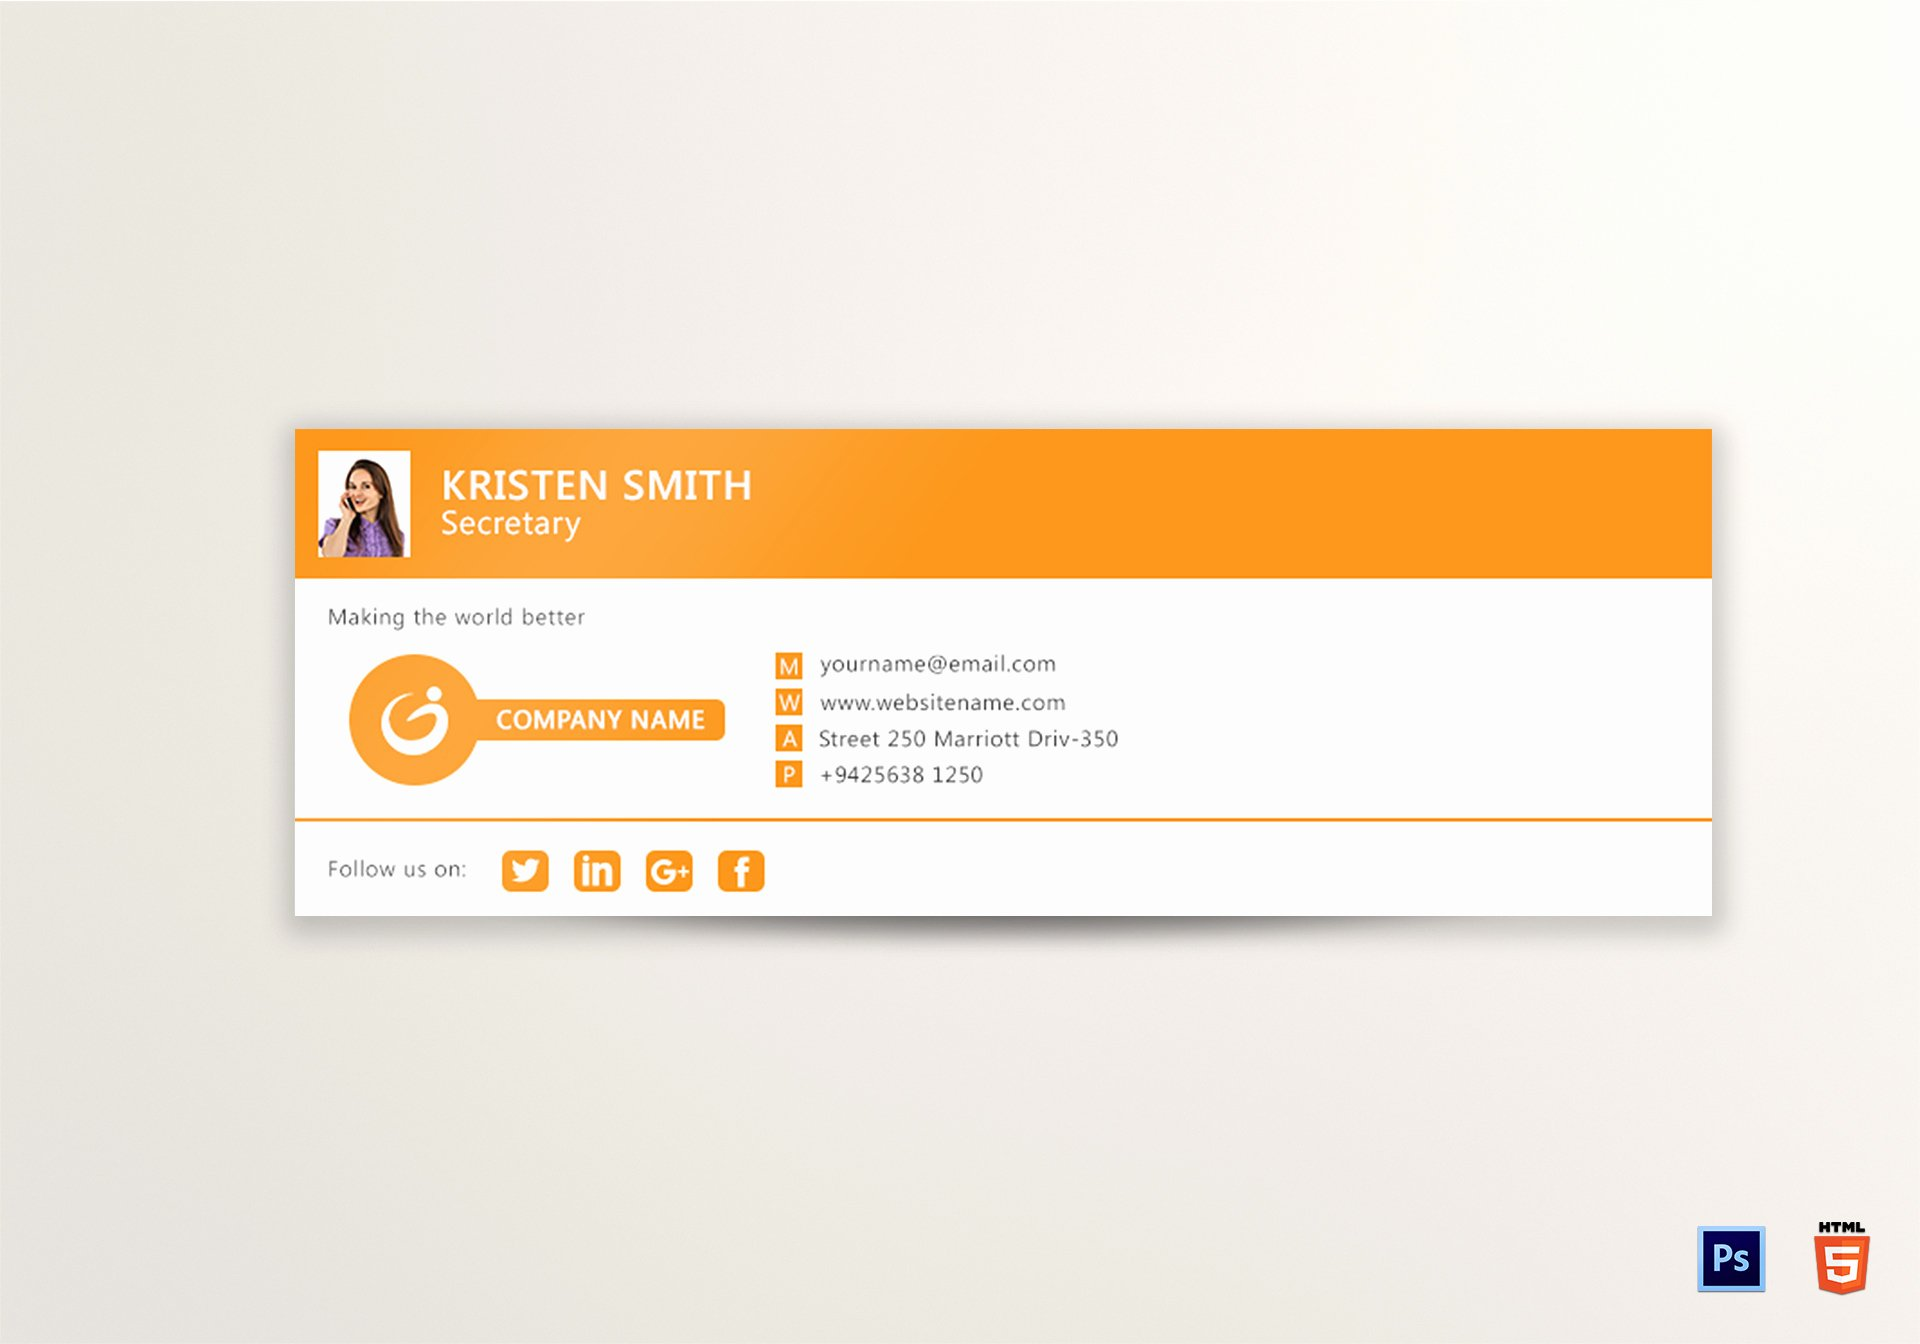 Outlook Email Signature Design Template In Psd HTML